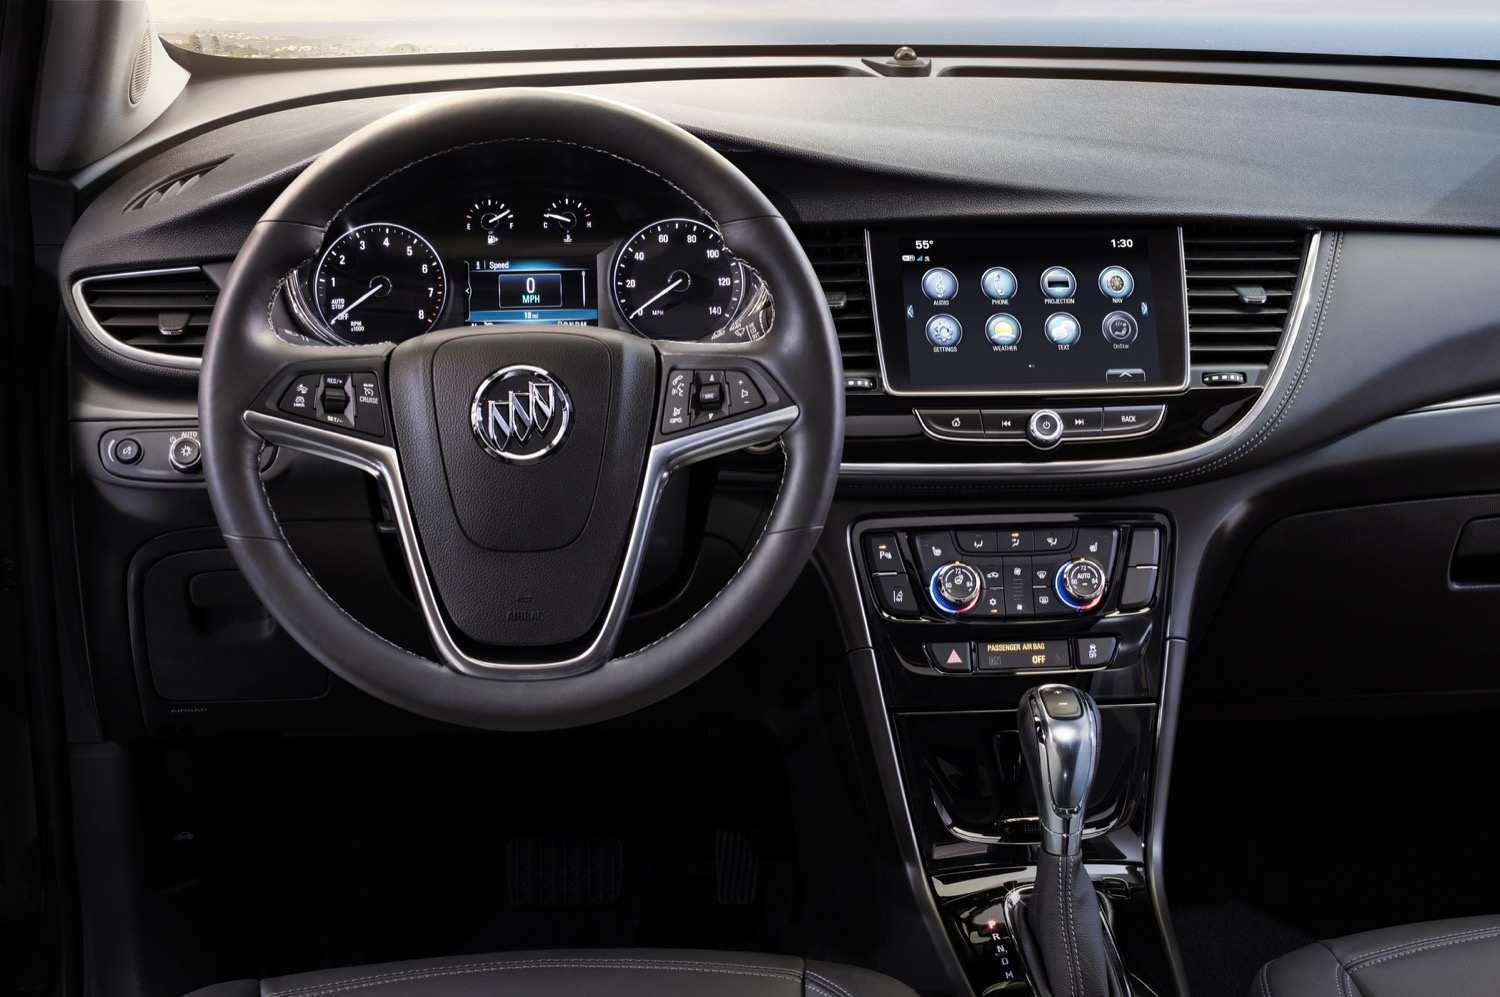 2020 Buick Encore Interior, Spy Photos, Specs >> 61 Great 2020 Buick Encore Gx Interior New Concept With 2020